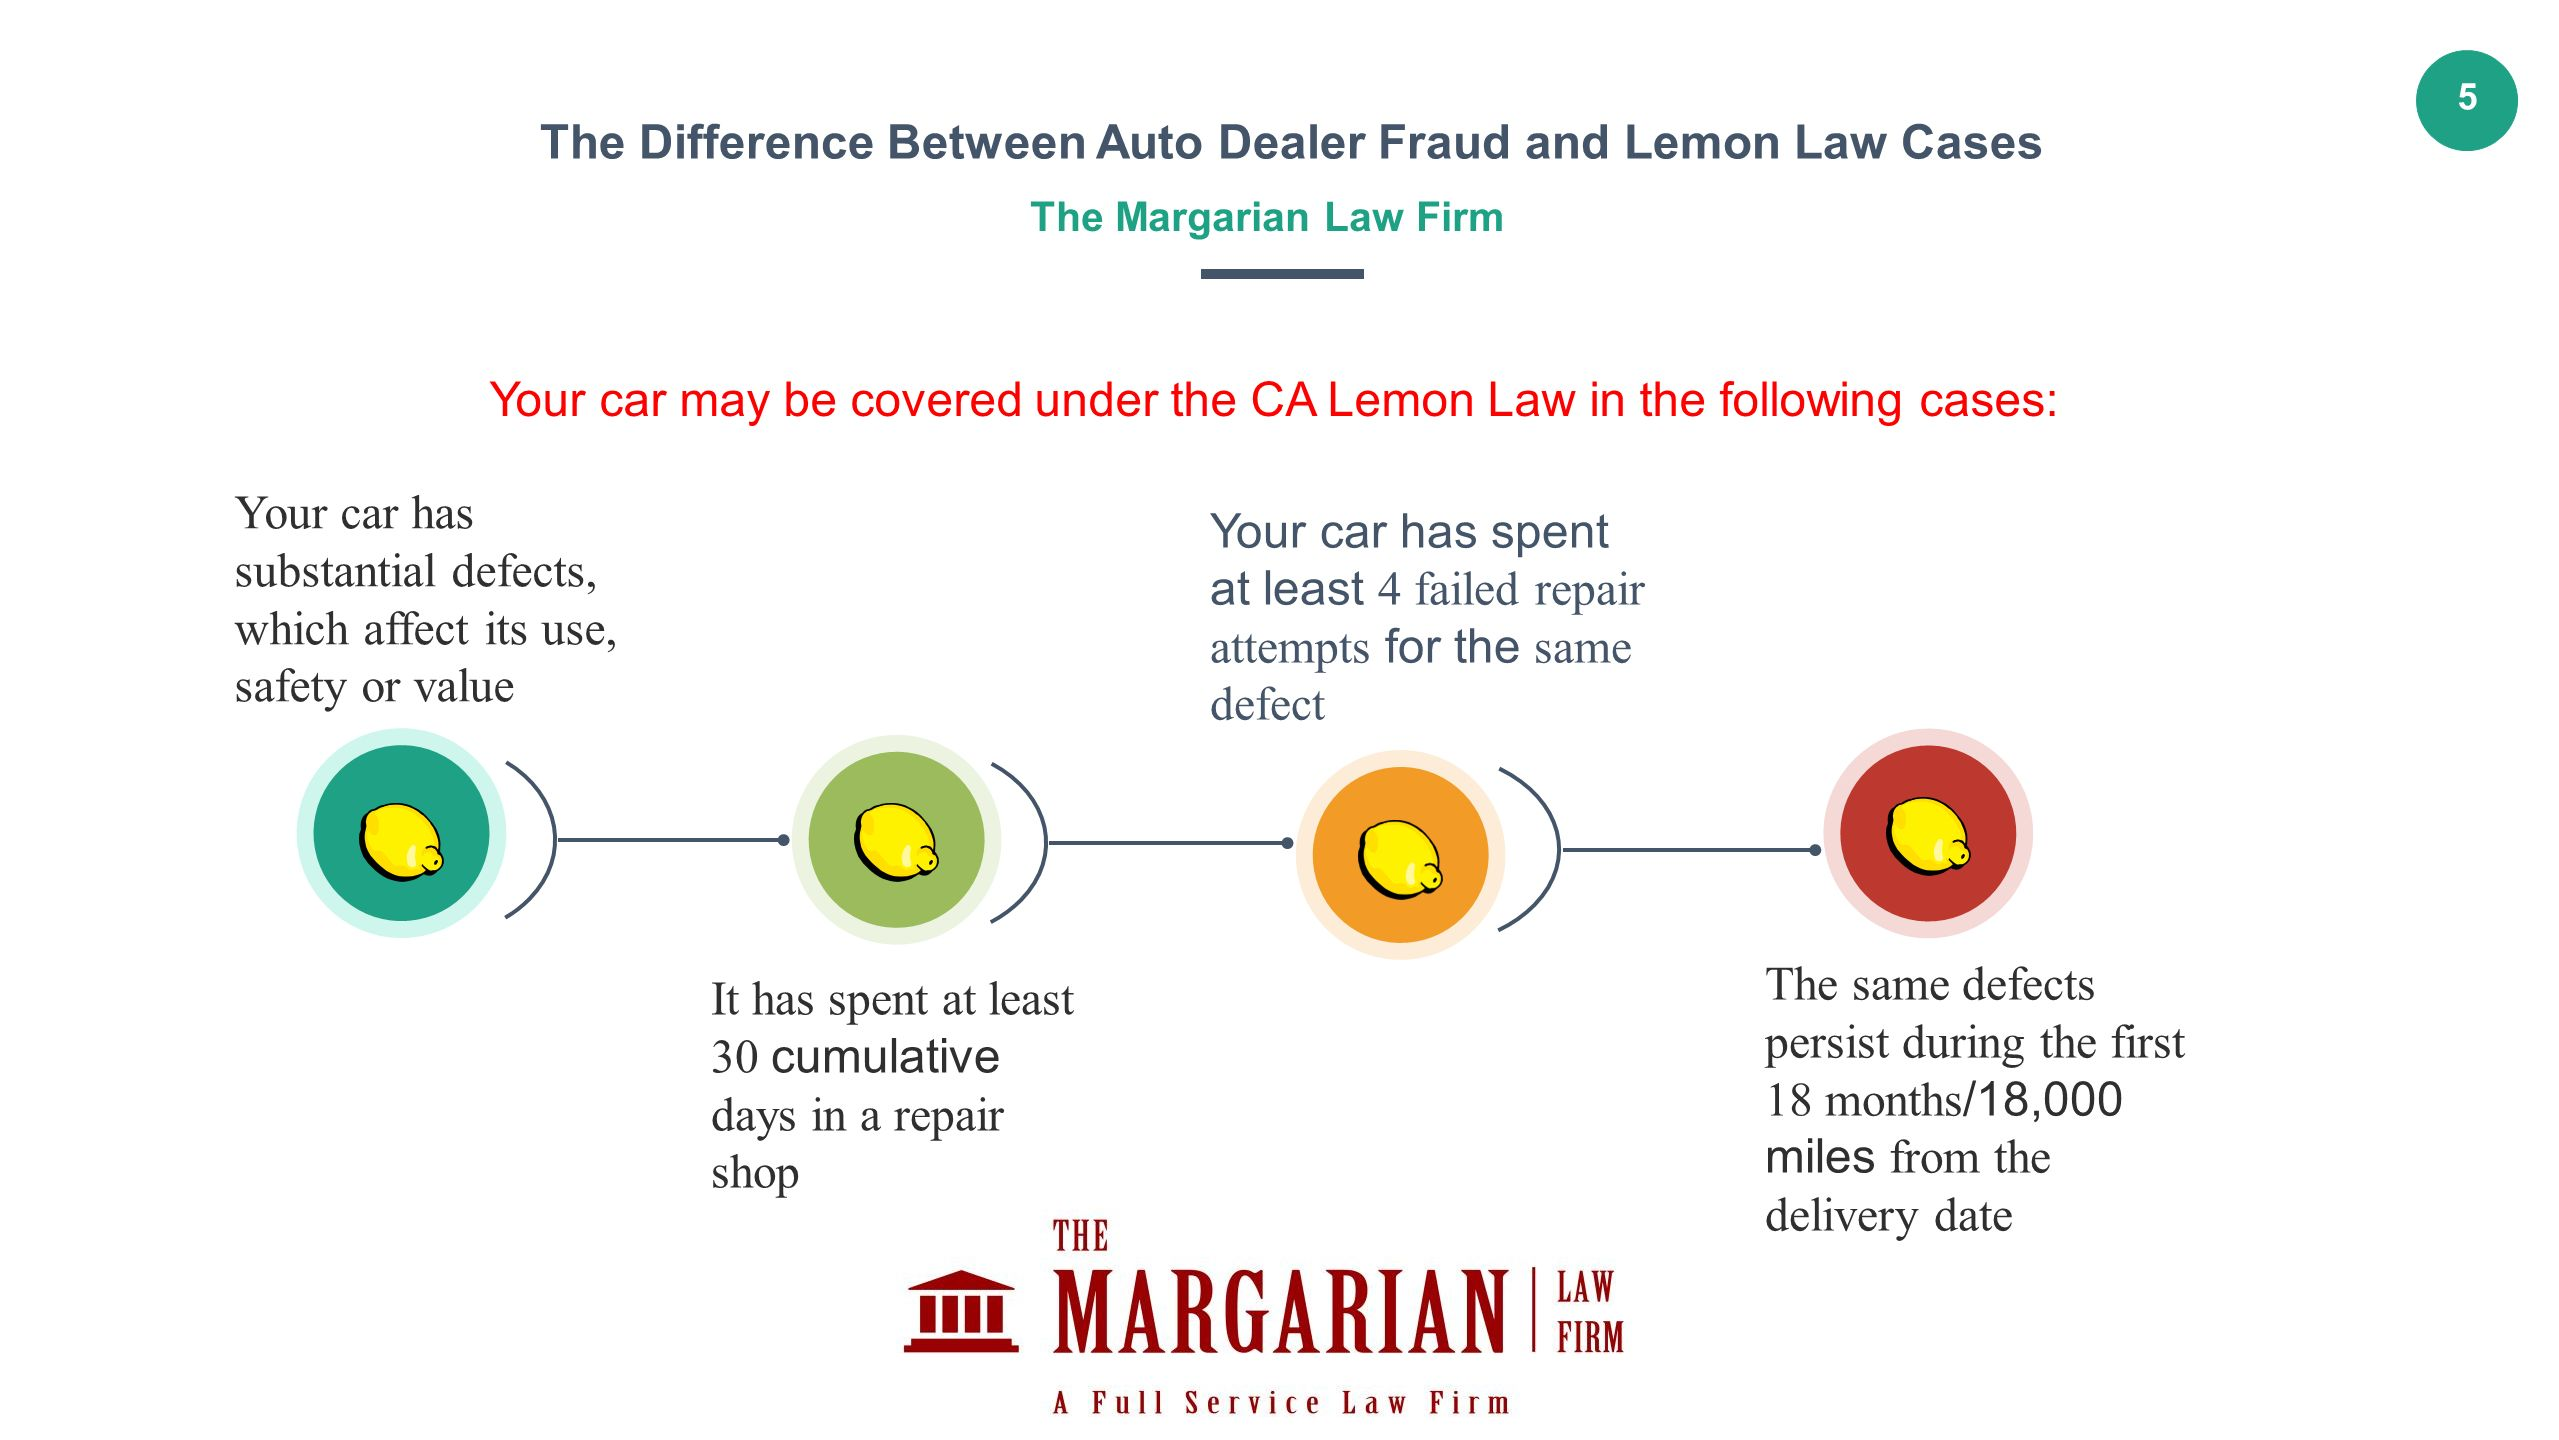 Texas Lemon Law Used Cars Unique 1 the Difference Between Auto Dealer Fraud and Lemon Law Cases the